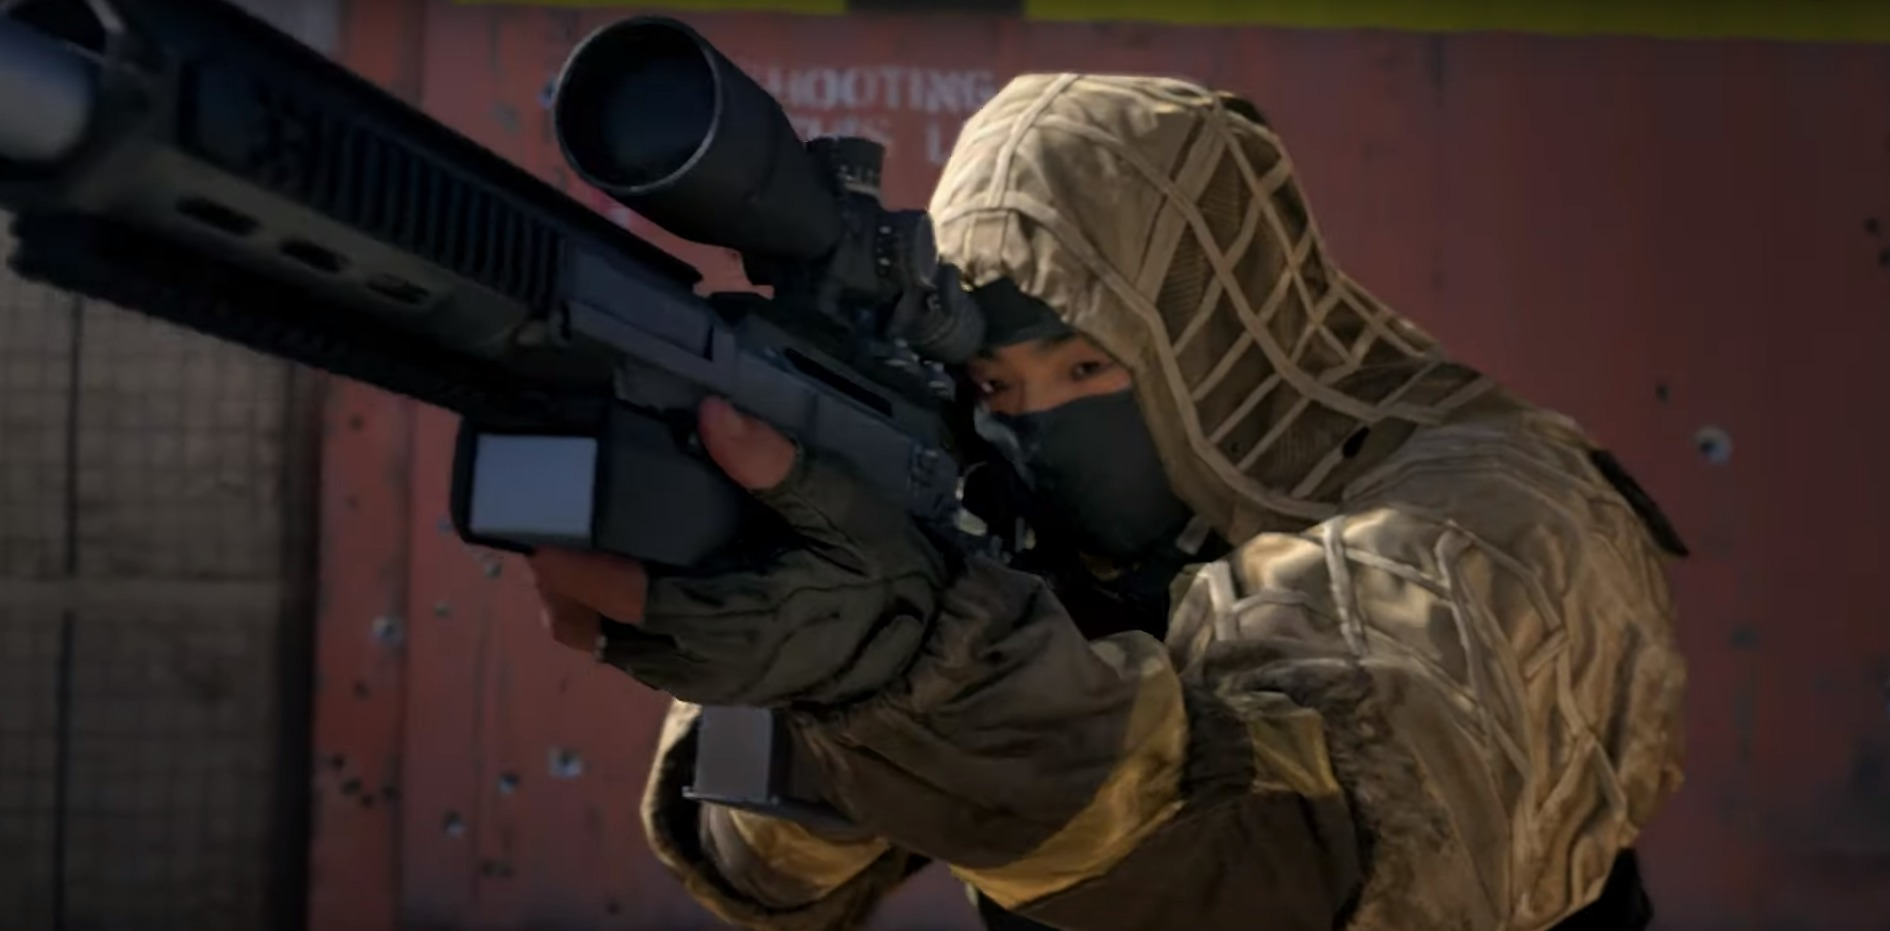 A player aims a sniper rifle in Call of Duty Modern Warfare 2019